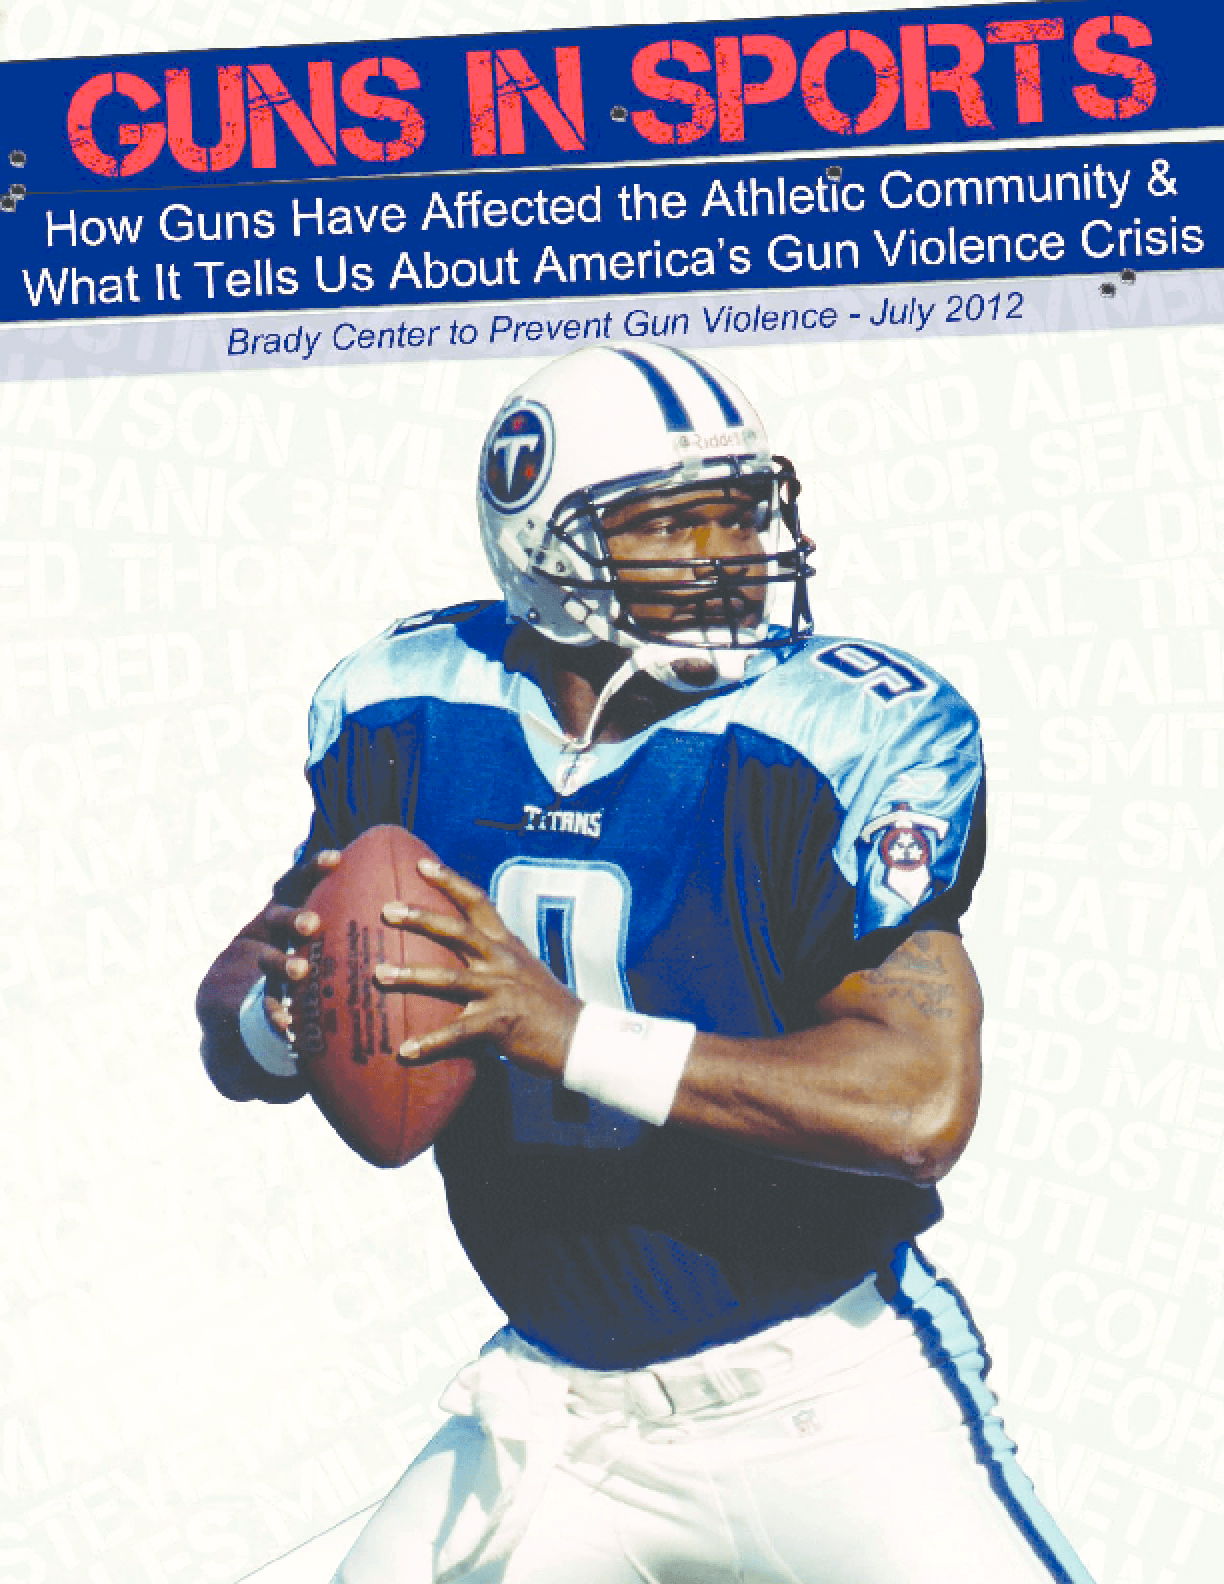 Guns in Sports: How Guns Have Affected the Athletic Community & What It Tells Us About America's Gun Violence Crisis